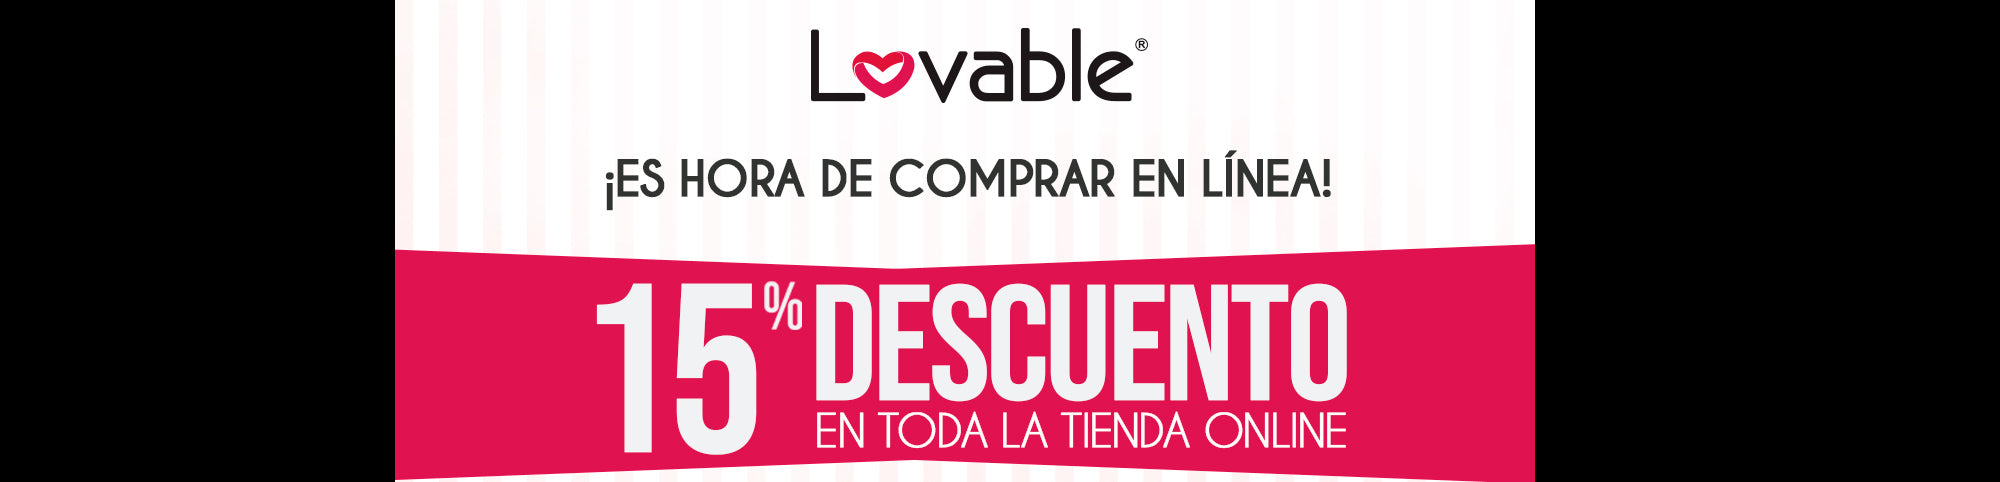 https://www.lovable.com.mx/collections/productos